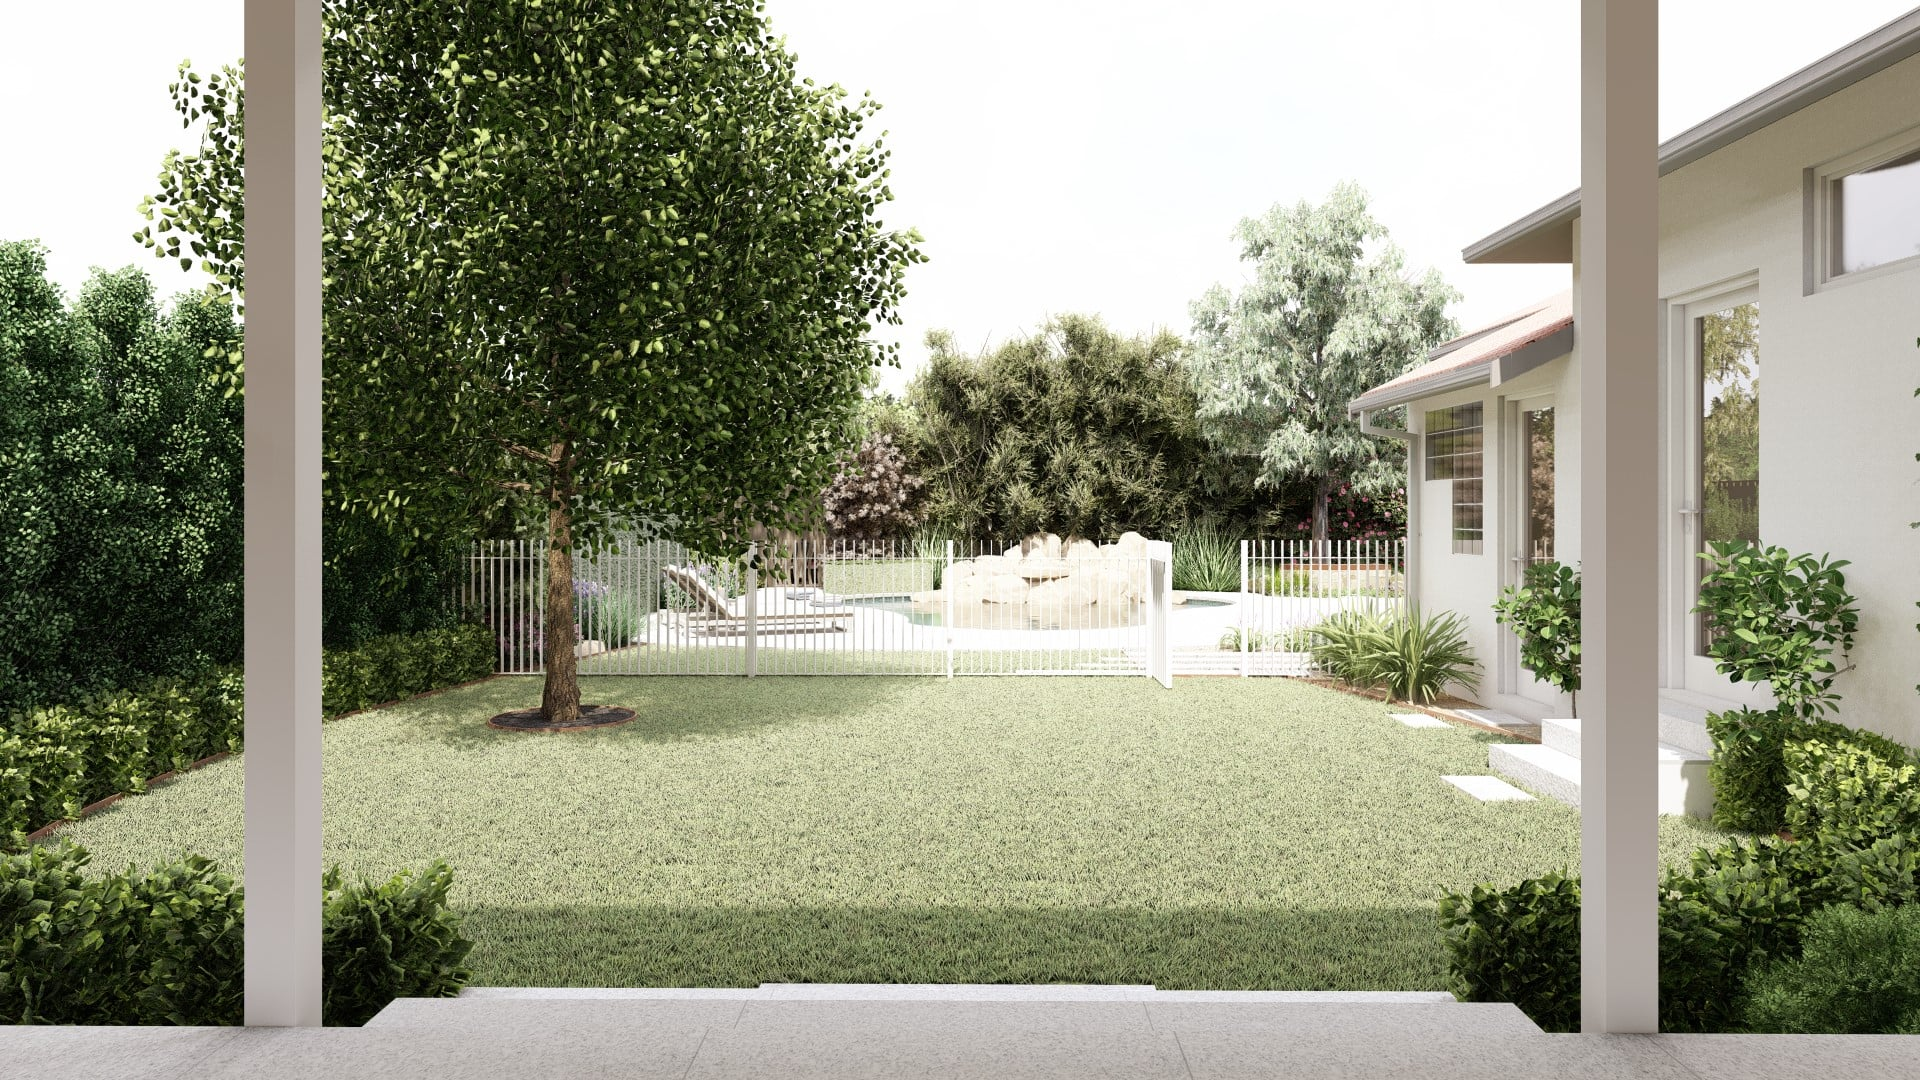 3d Design render from house